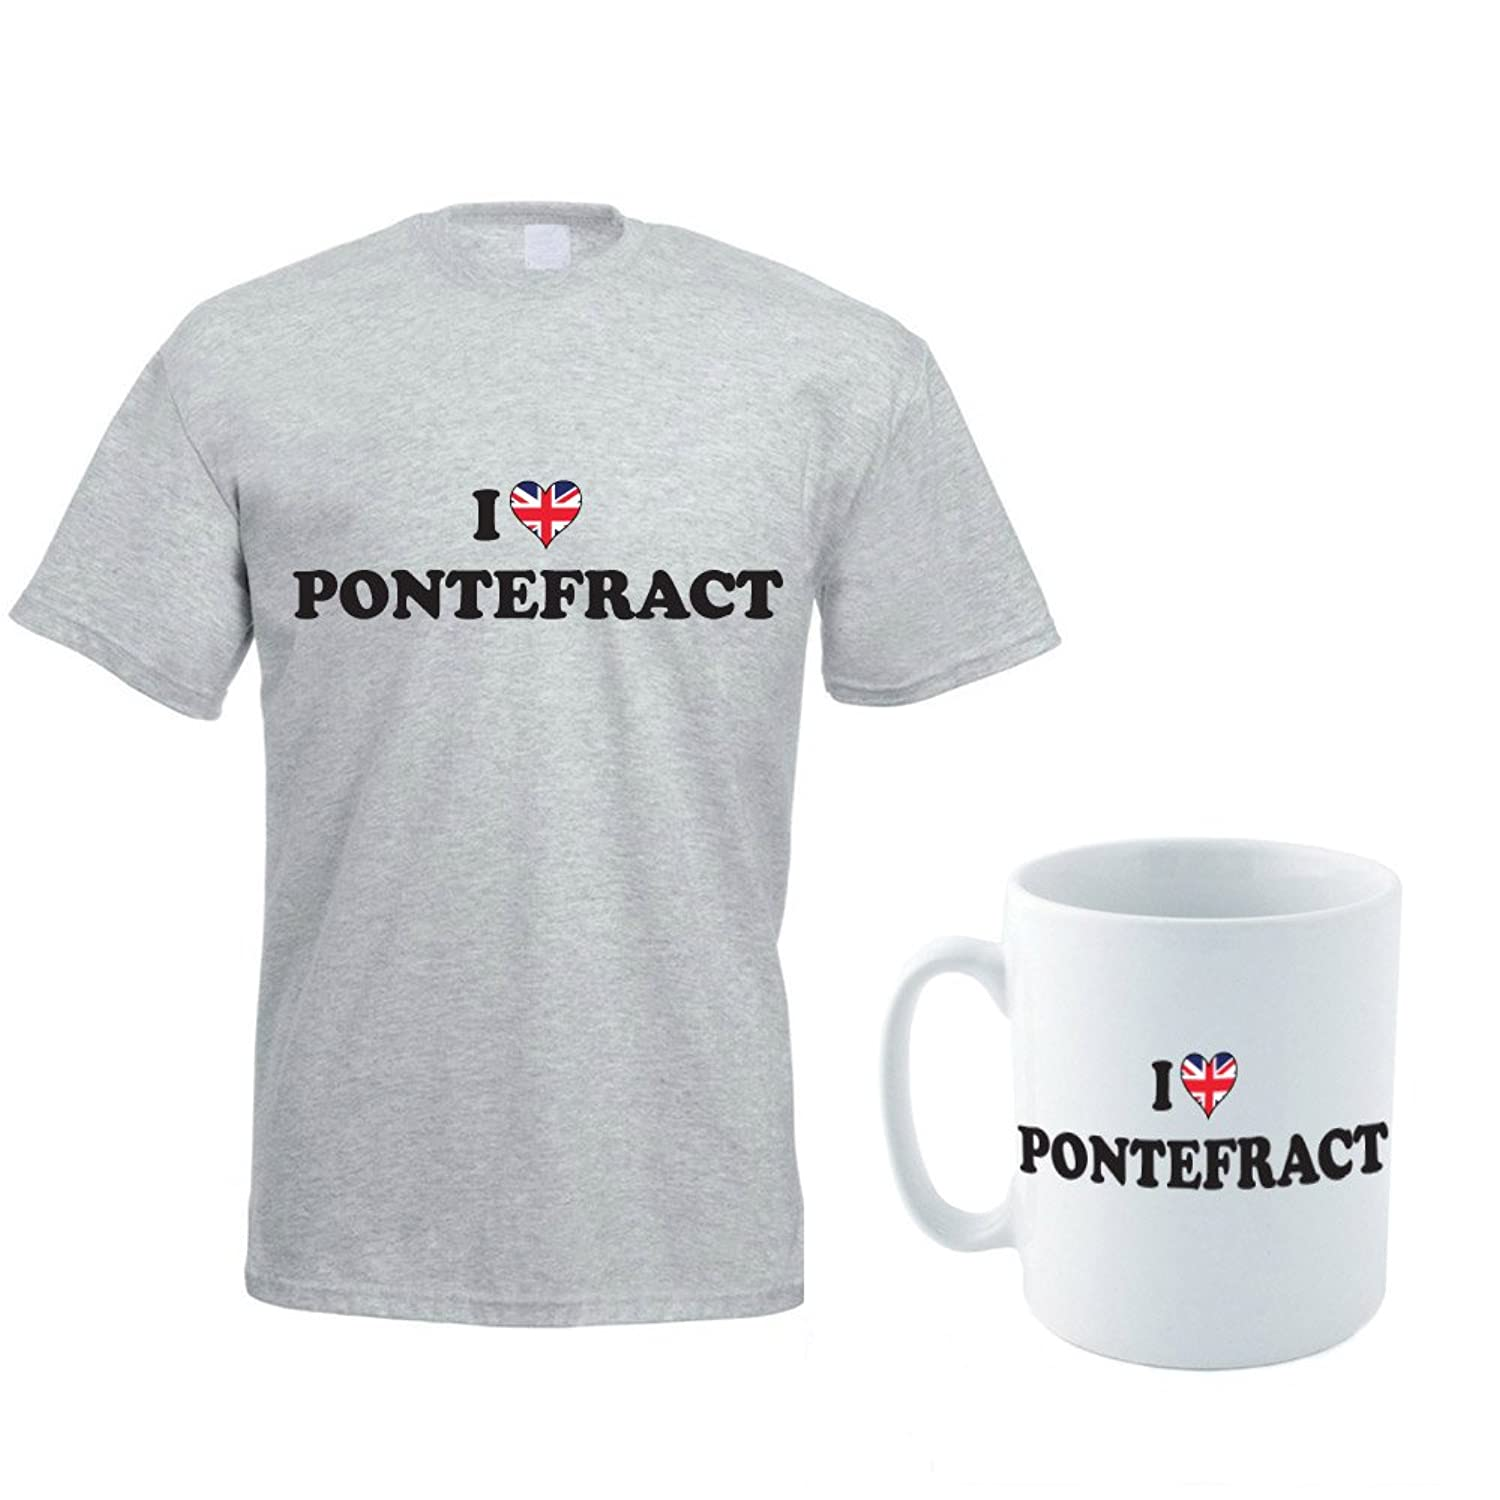 I LOVE PONTEFRACT - West Yorkshire / County / Rose / Novelty Themed Men's T-Shirt and Ceramic Mug Set